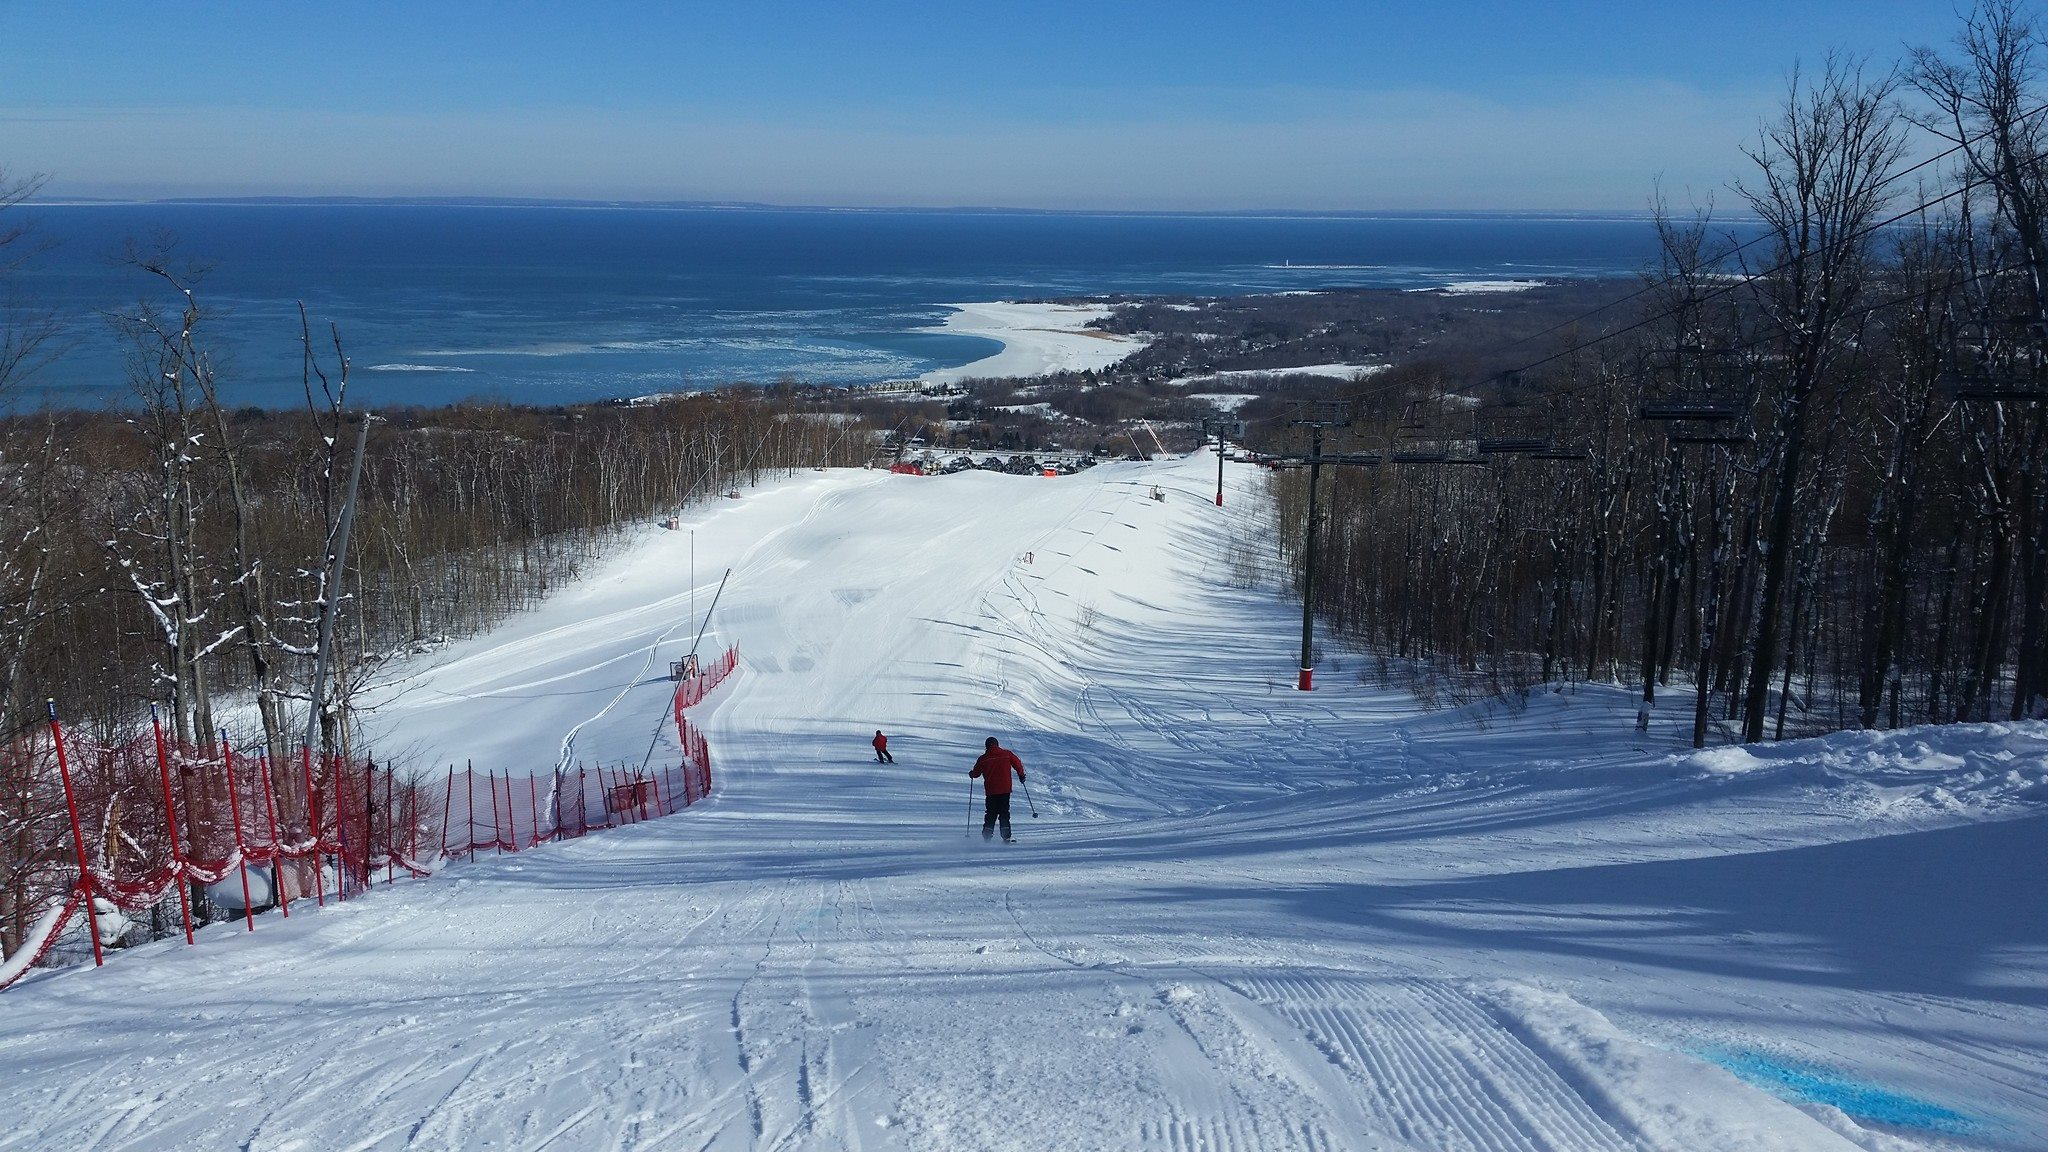 74 Year Old Woman Dies After Skiing Accident First